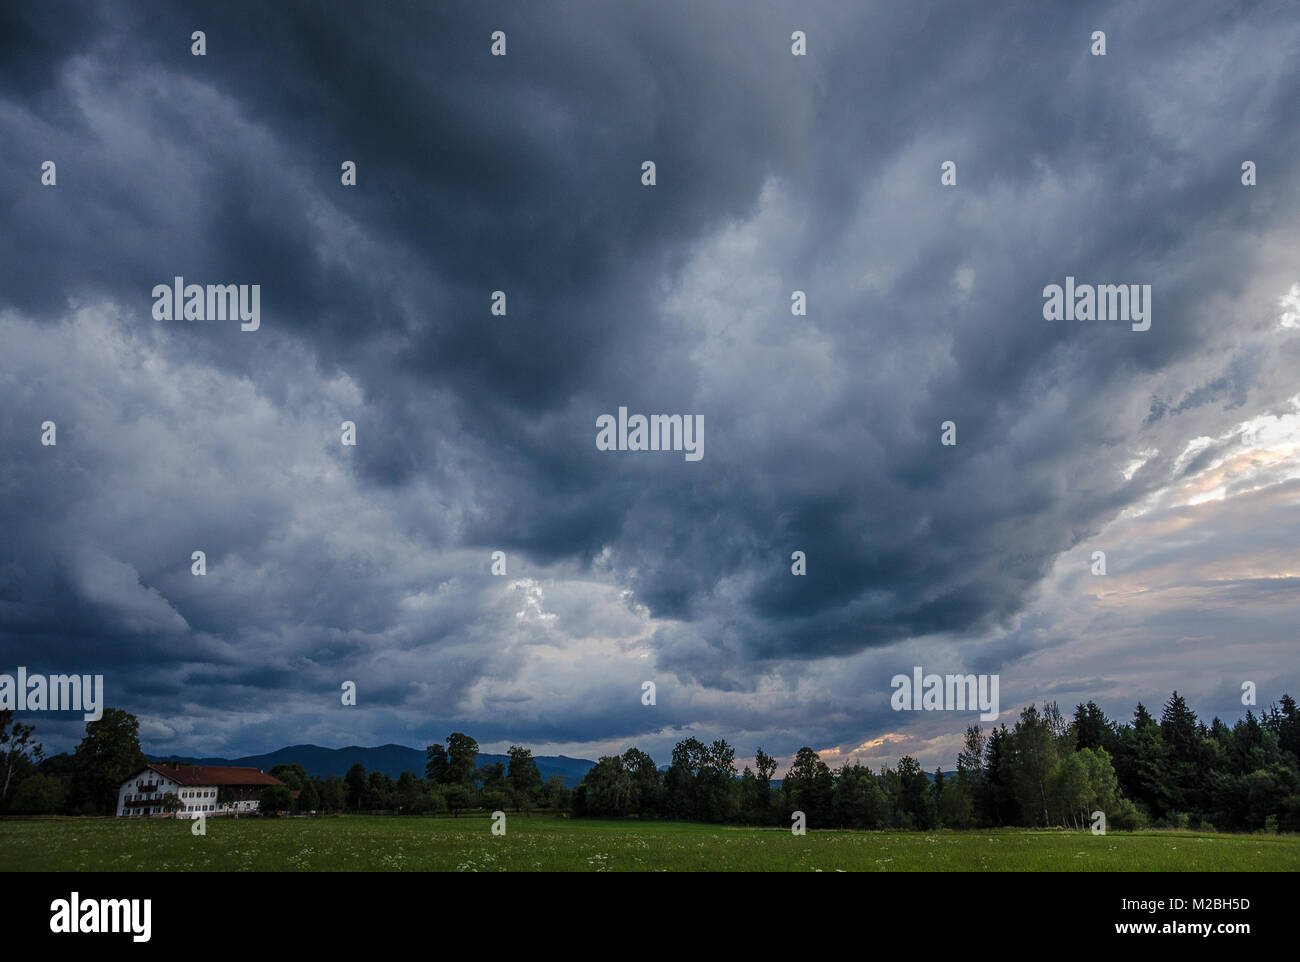 A thunderstorm, also known as an electrical storm, lightning storm, or thundershower, is a storm characterized by - Stock Image